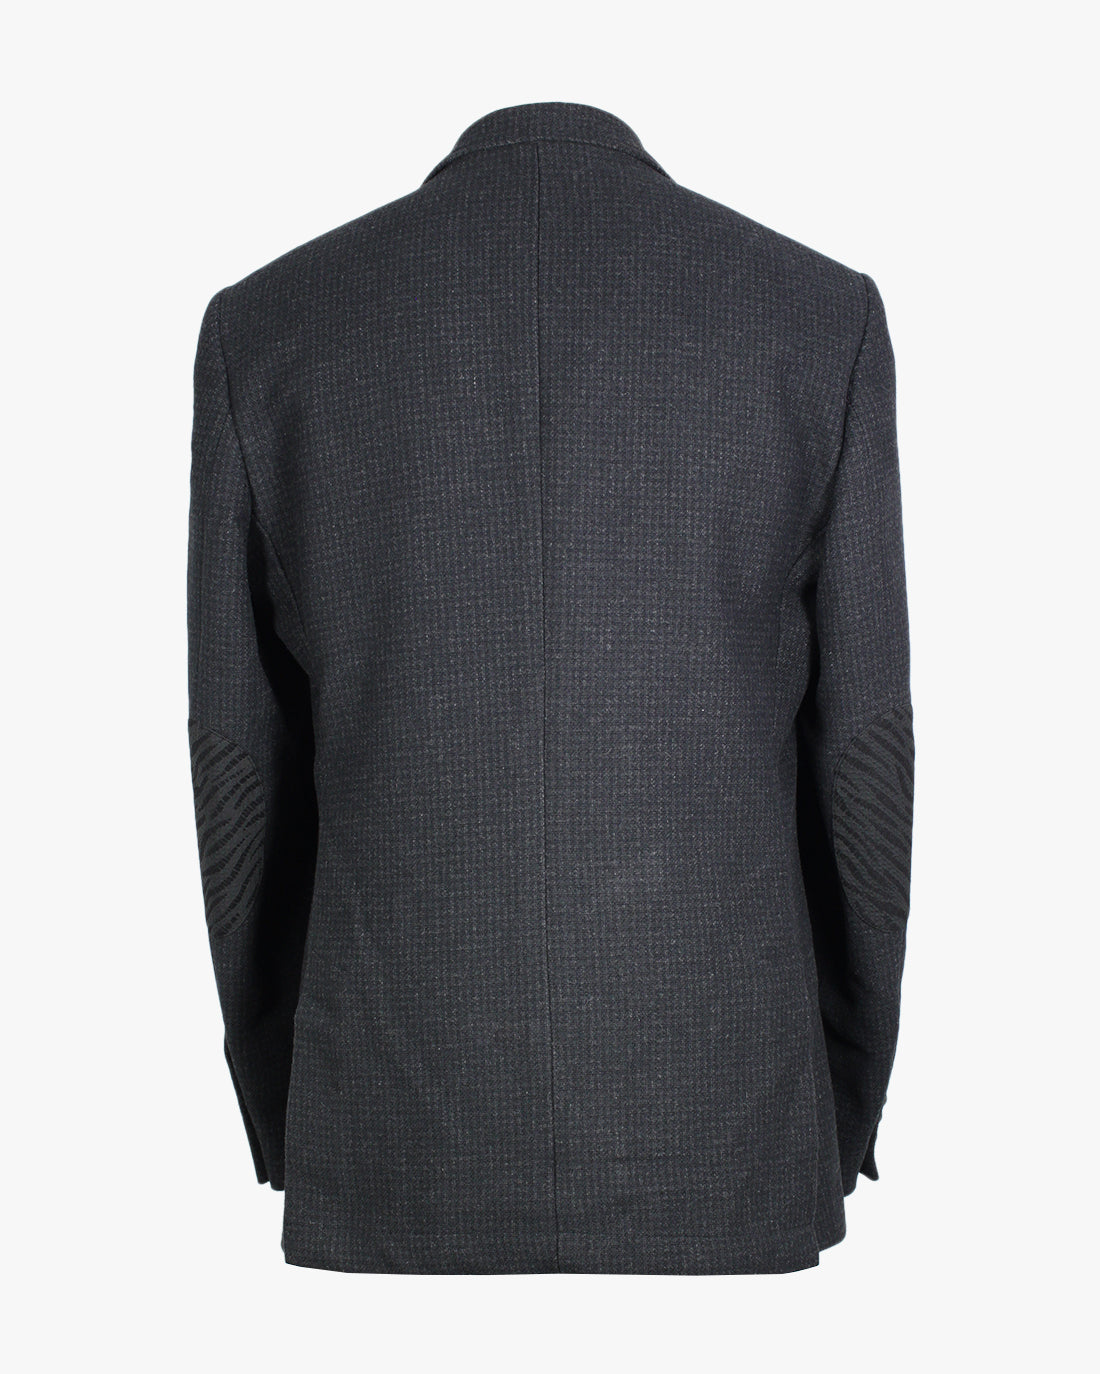 Charcoal Houndstooth Bertie Jacket - Holland Esquire